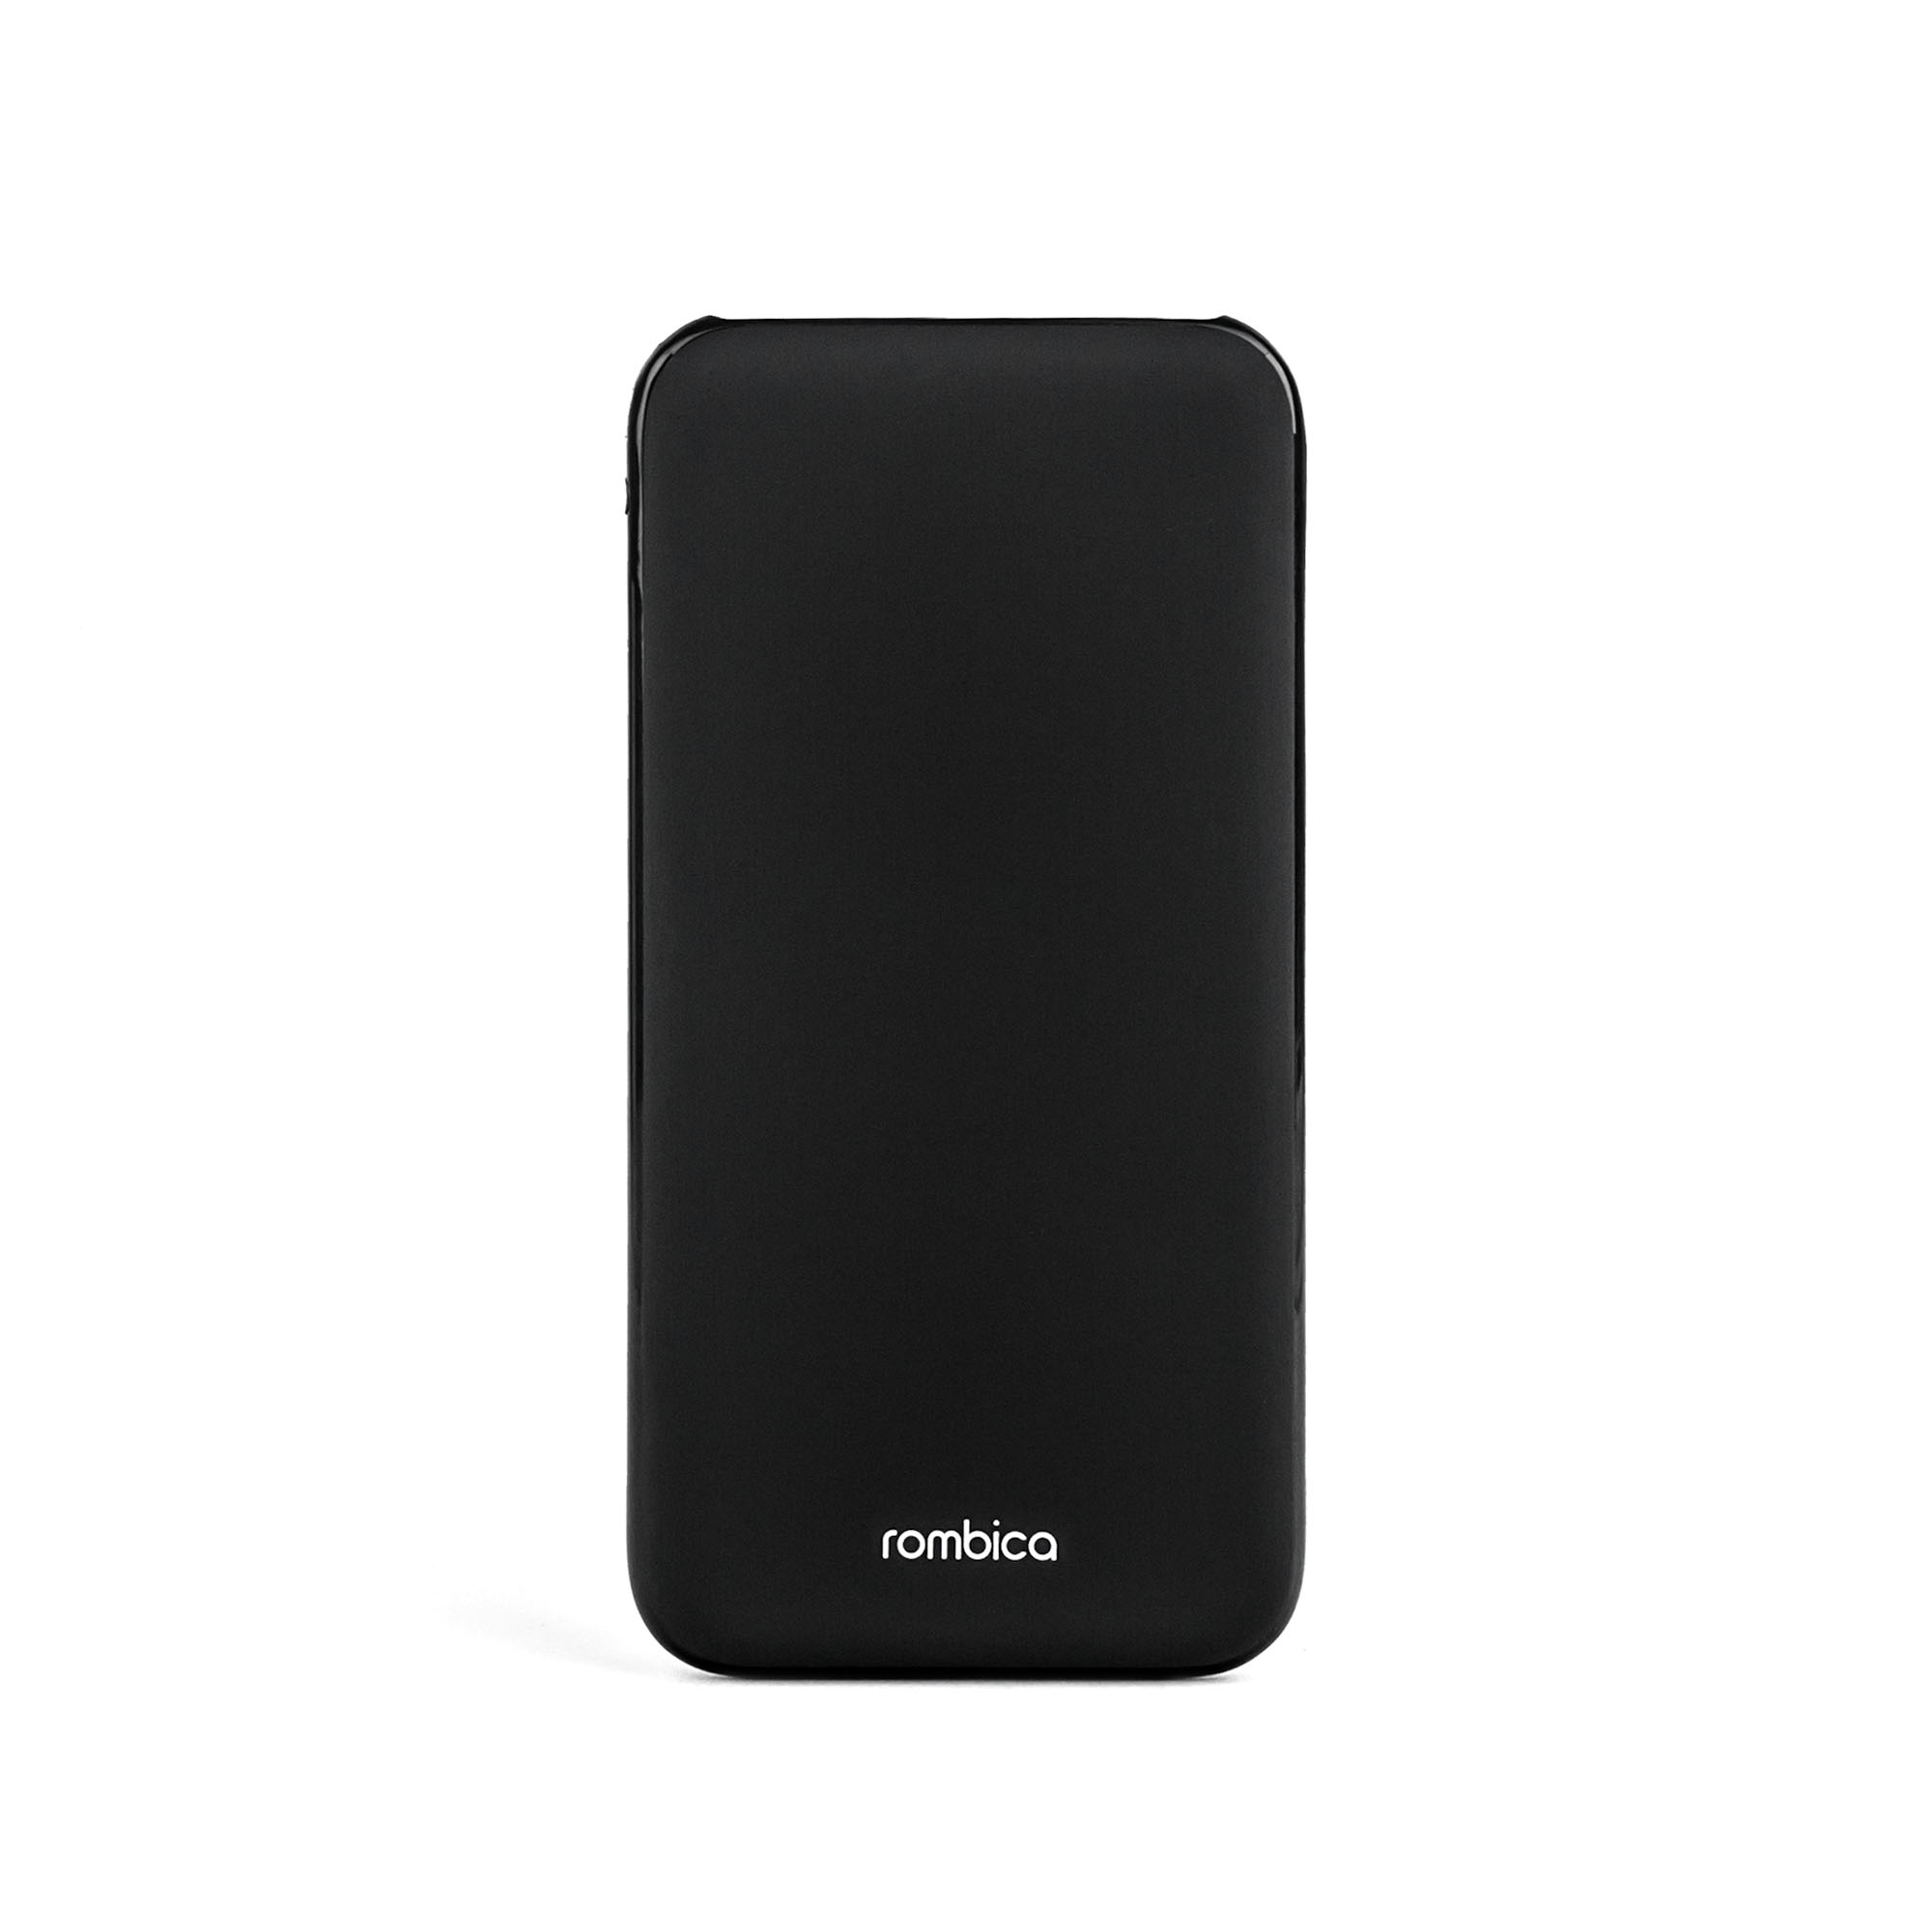 Rombica NEO Omega Black mini